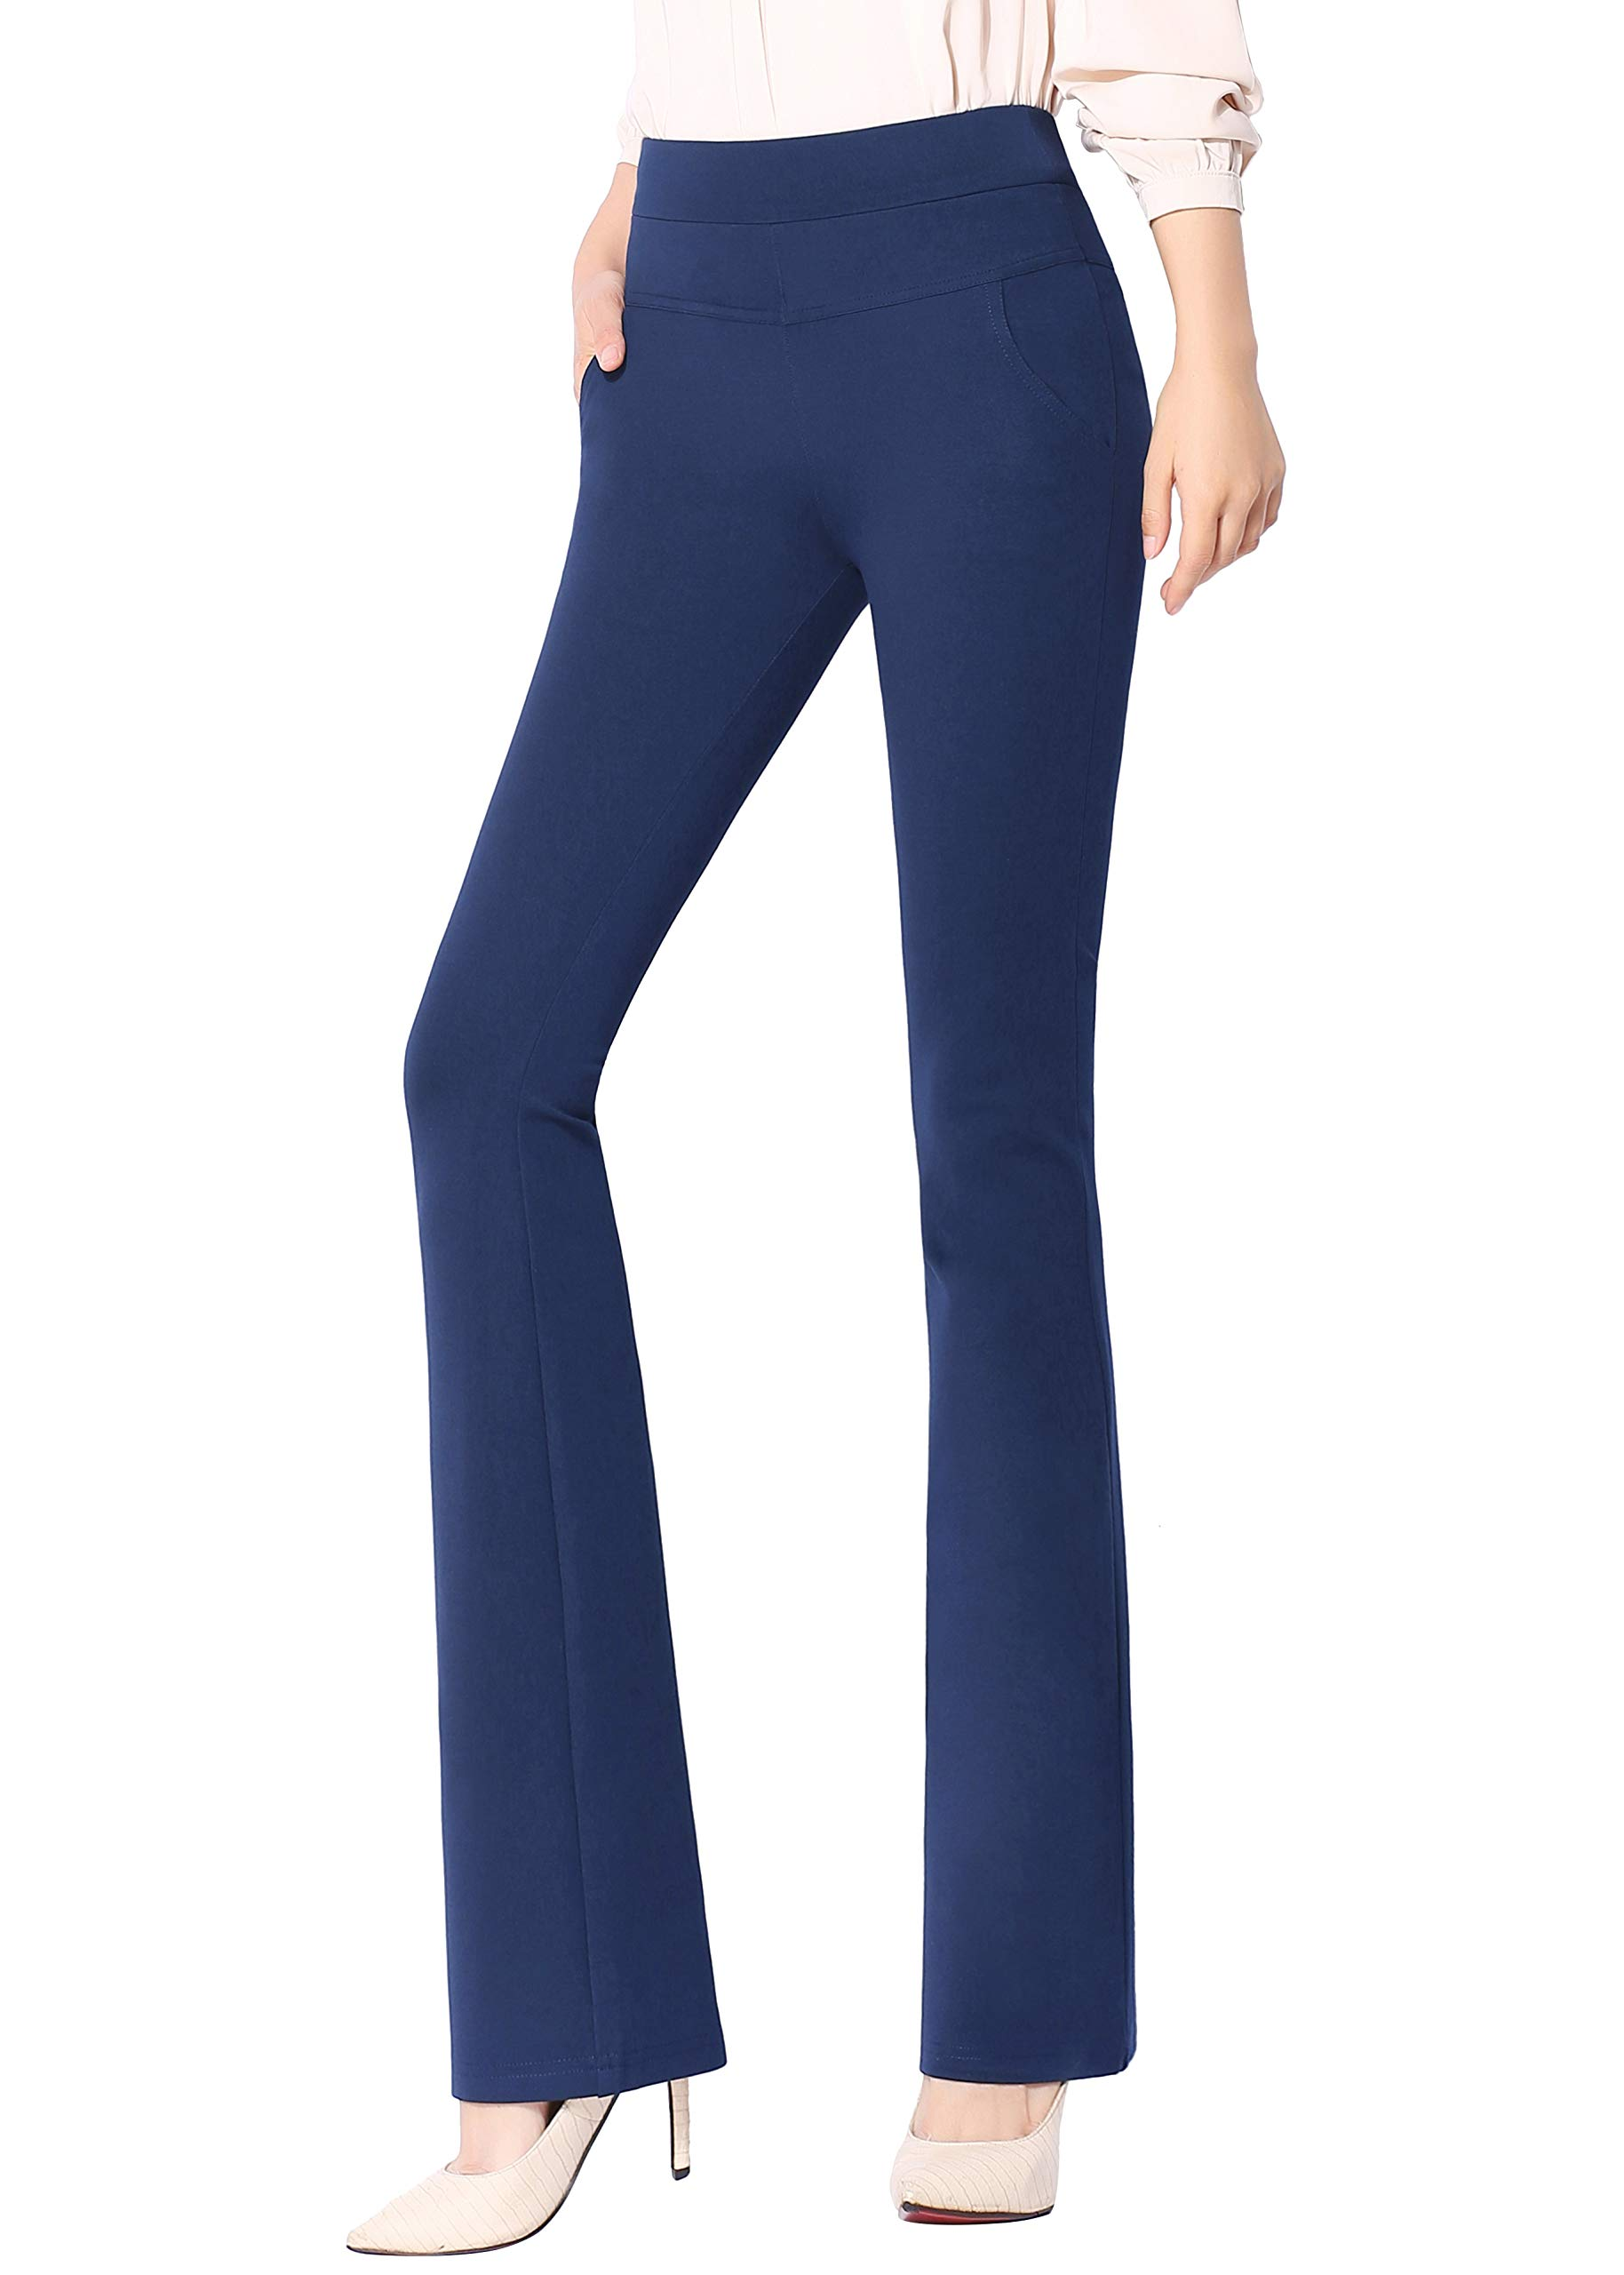 Smibra Womens Ease in to Comfort Pull On Stretch Career Ankle Pants with Pockets